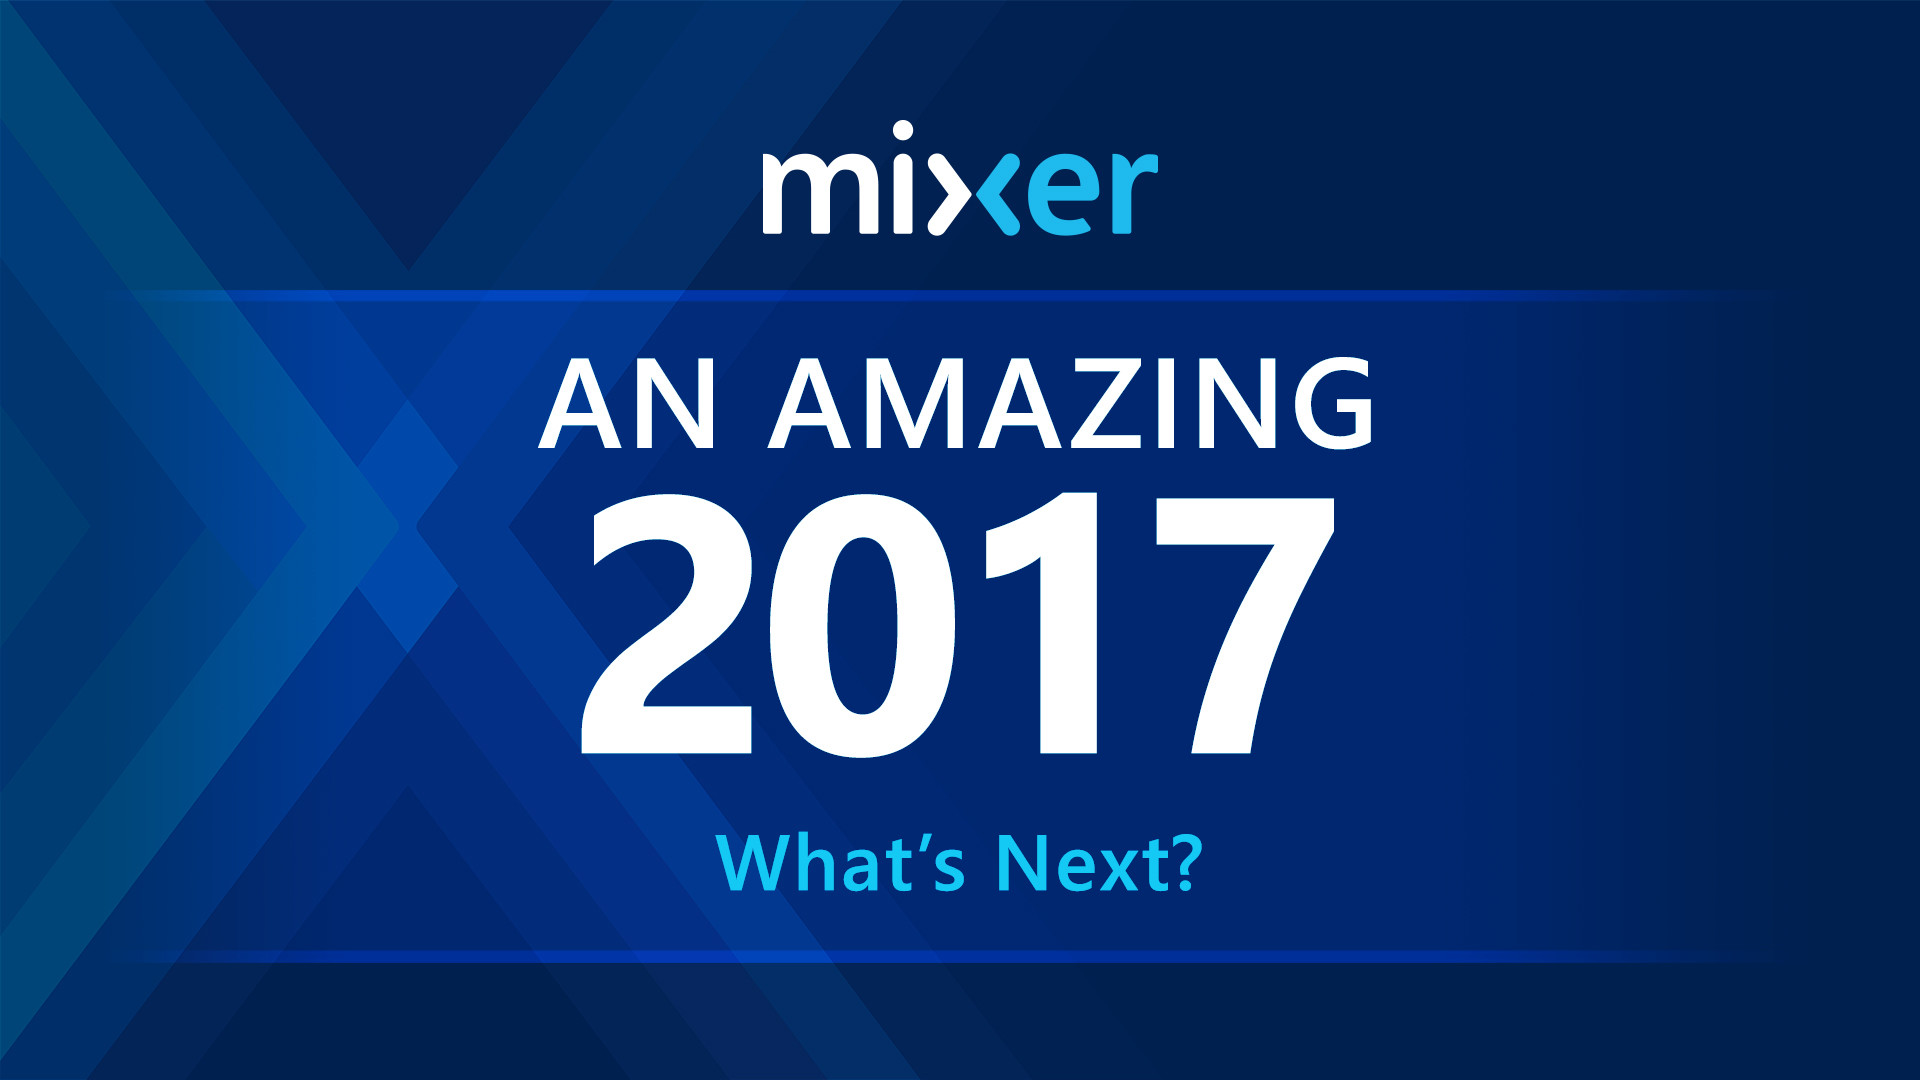 Myxer Wallpapers All Popular (67+ images)